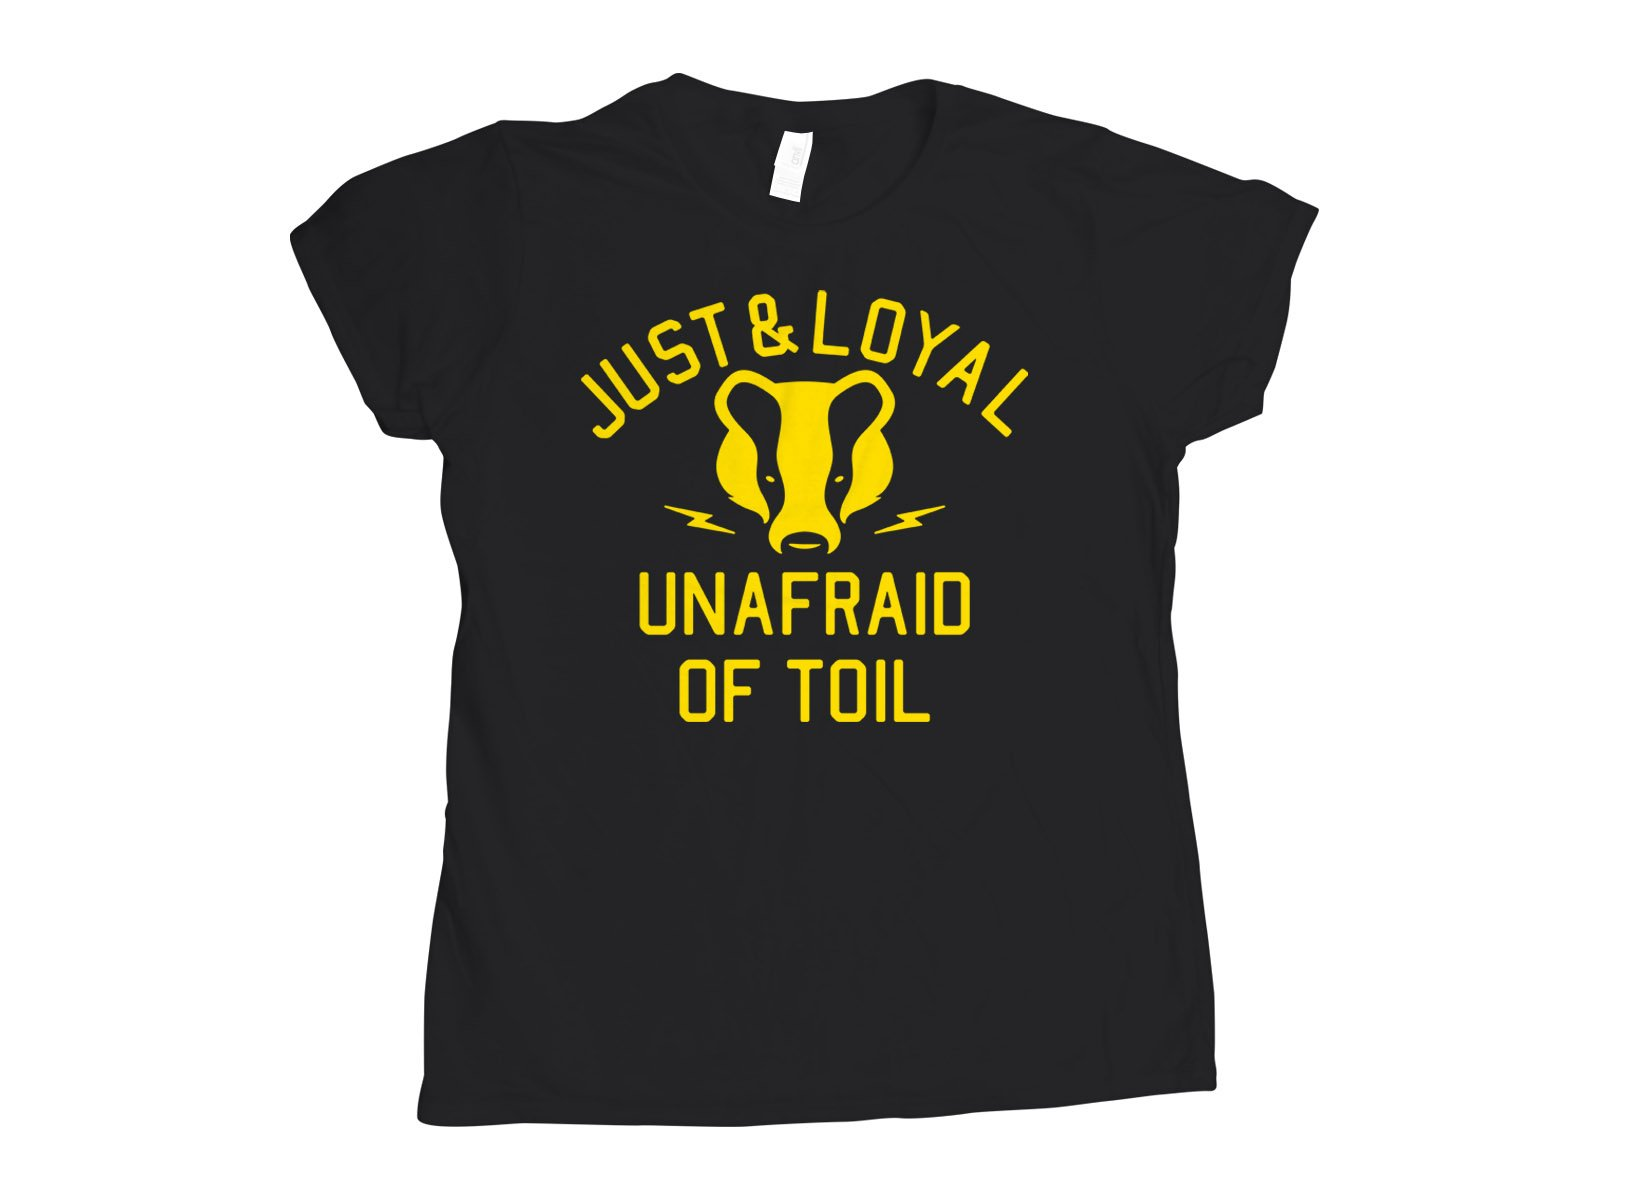 Just And Loyal, Unafraid Of Toil on Womens T-Shirt